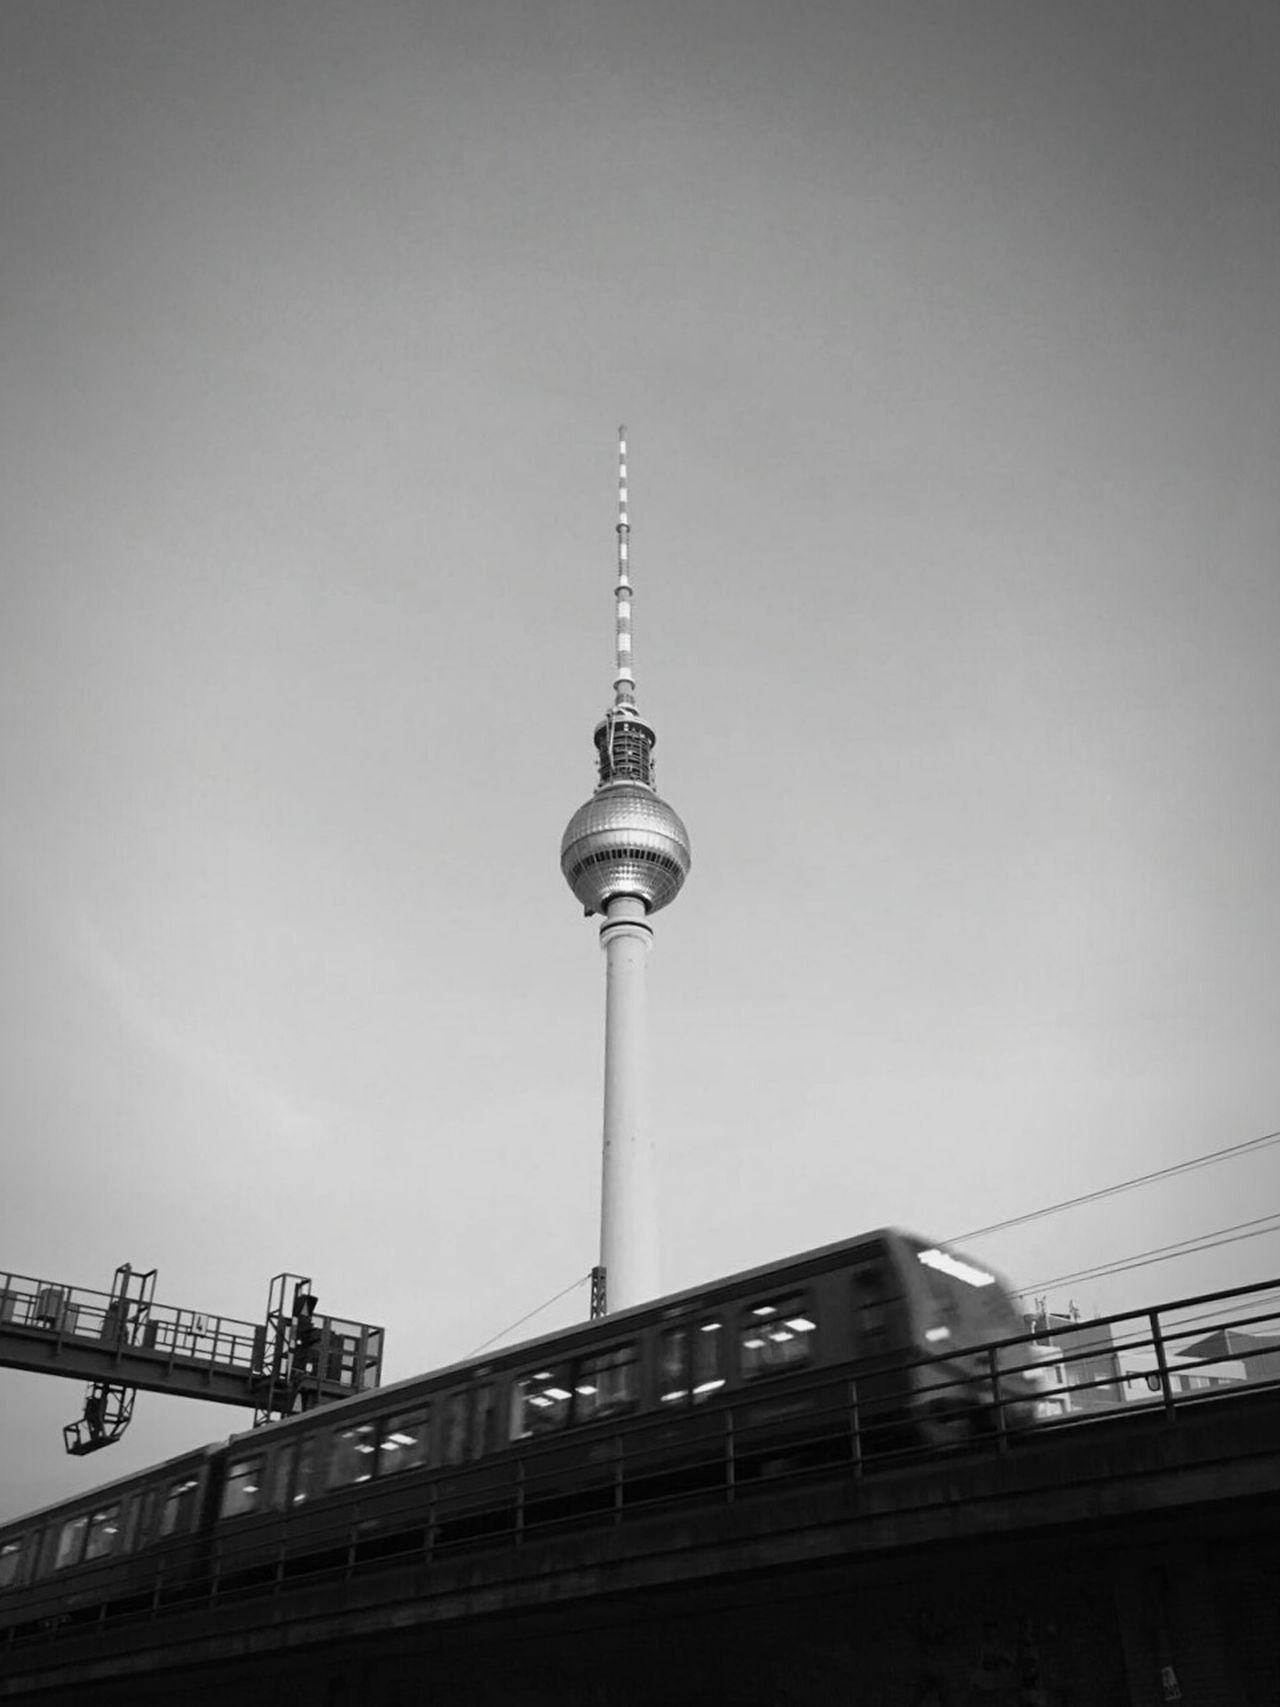 Travel Destinations Communication Architecture Tall - High Tower Built Structure Sky Television Industry Outdoors Building Exterior Day Global Communications City Berlin Alexanderplatz TV Tower S Bahn City Life The Street Photographer - 2017 EyeEm Awards The Architect - 2017 EyeEm Awards